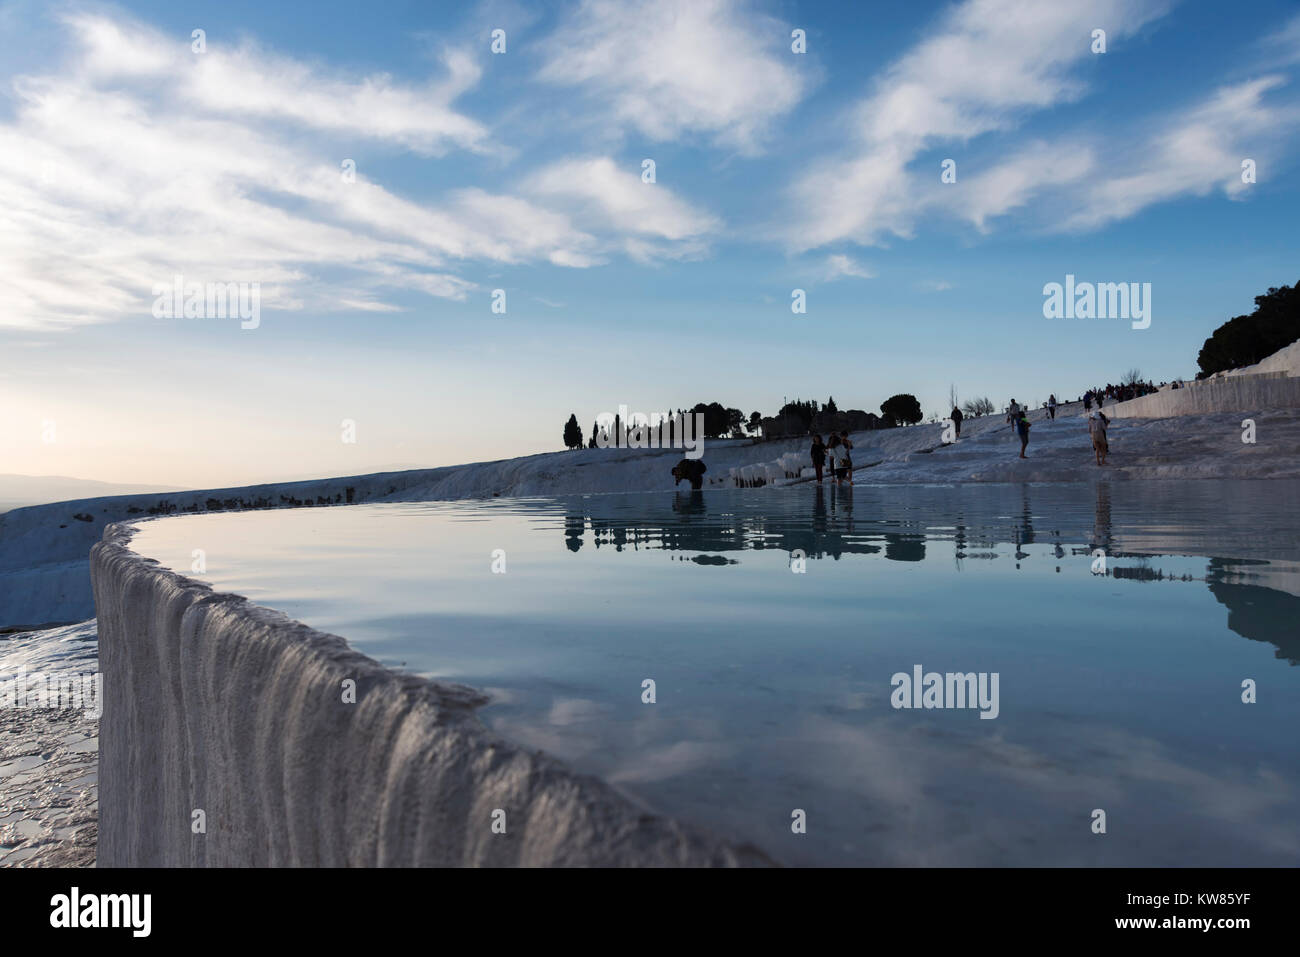 JANUARY 24; 2015 PAMUKKALE Pamukkale,is a natural site in Denizli Province in southwestern Turkey. Unidentified - Stock Image